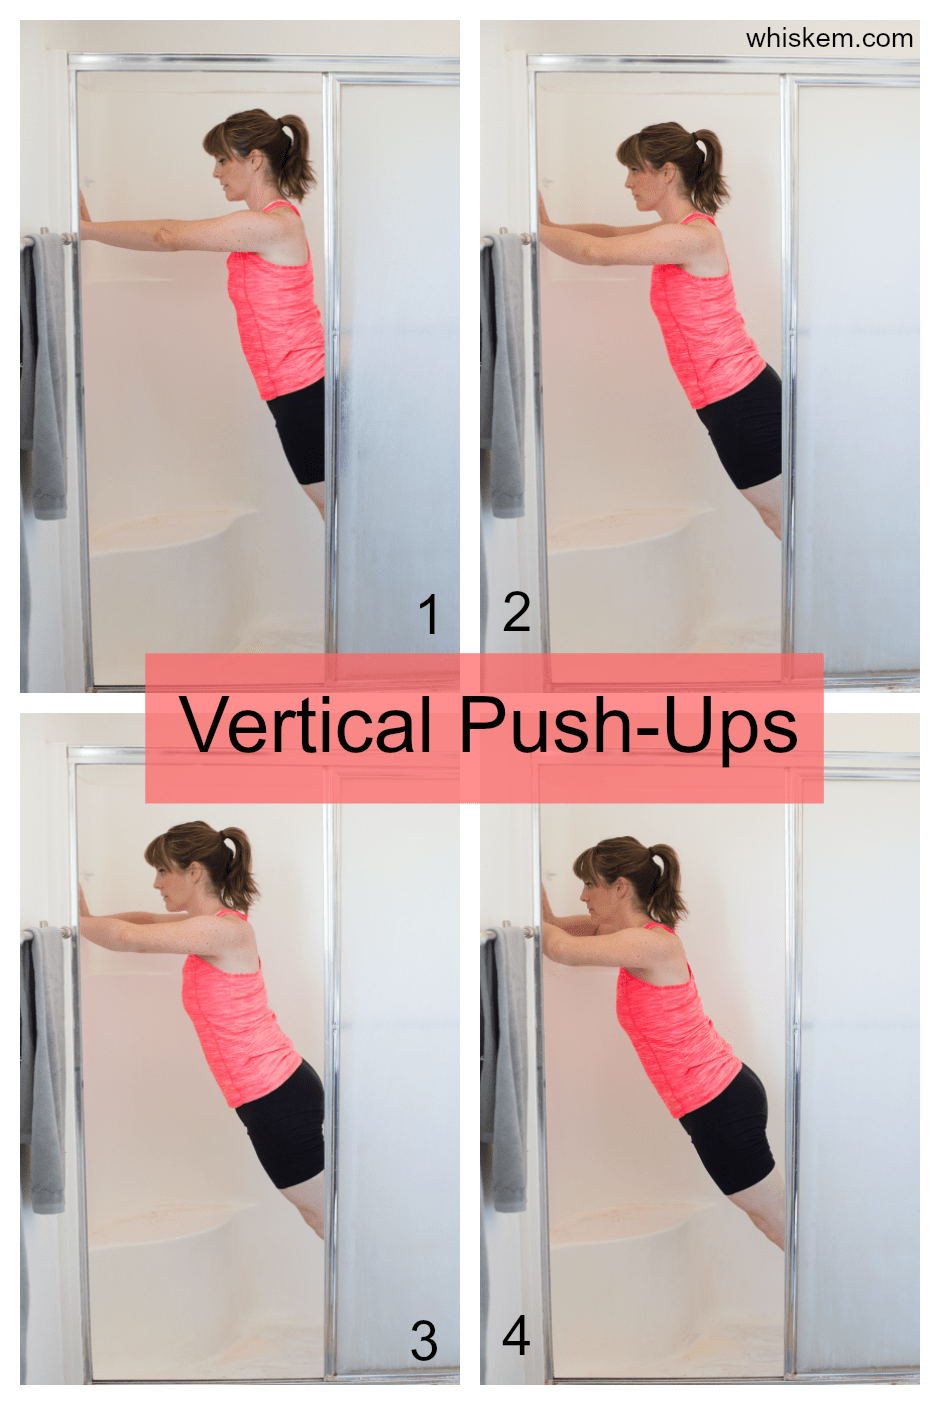 vertical-pushups-instructions